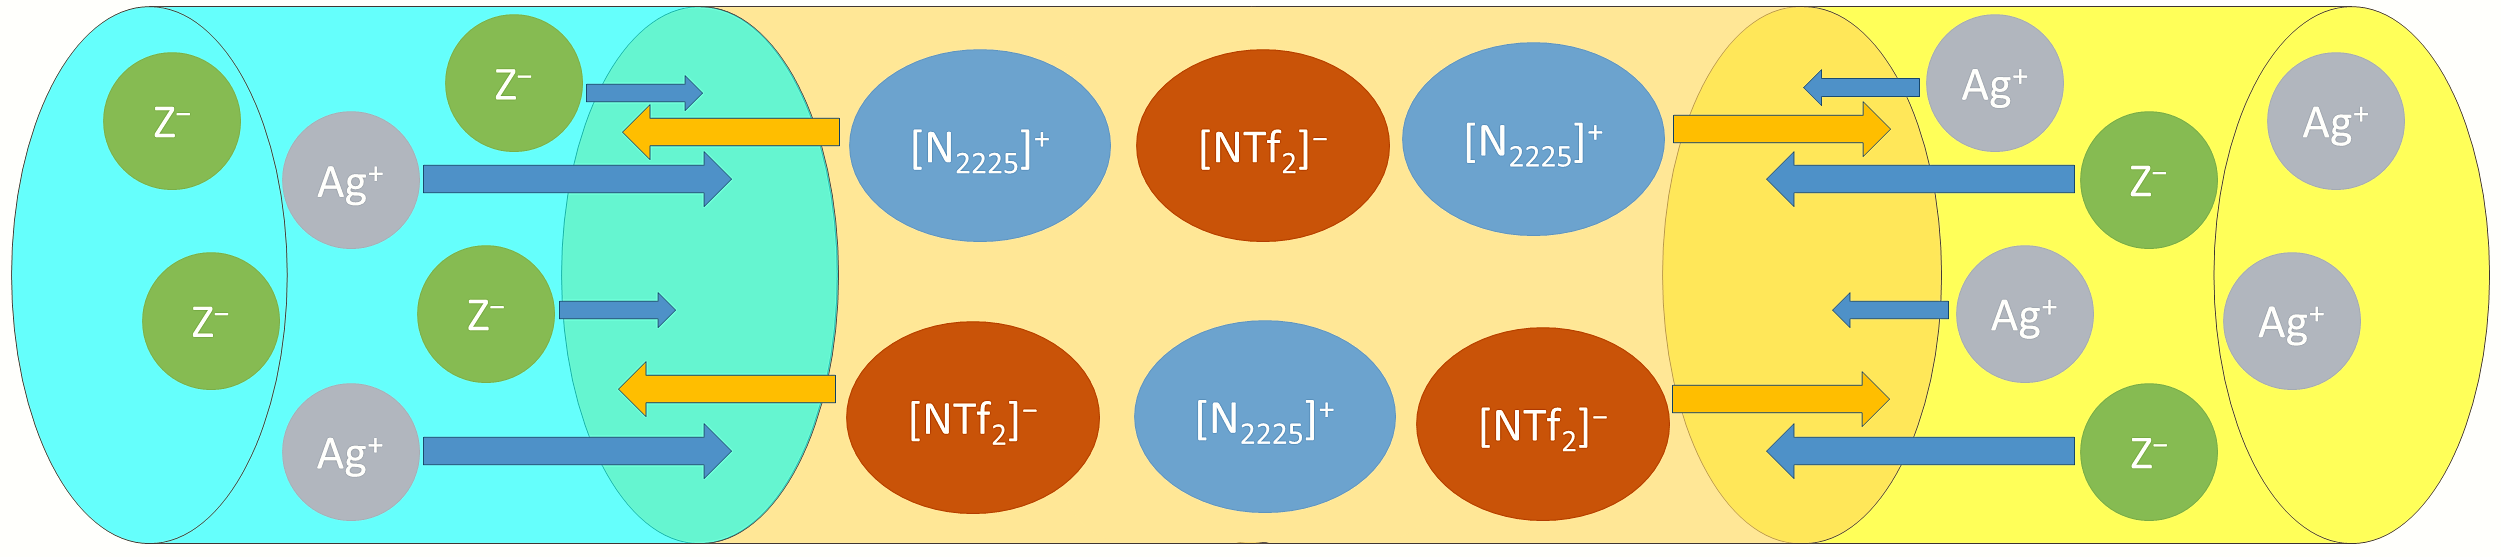 Krossing VIP-Paper II: The Ideal Ionic Liquid Salt Bridge for Direct Determination of Gibbs Energies of Transfer of Single Ions, Part II: Evaluation of the Role of Ion Solvation and Ion Mobilities